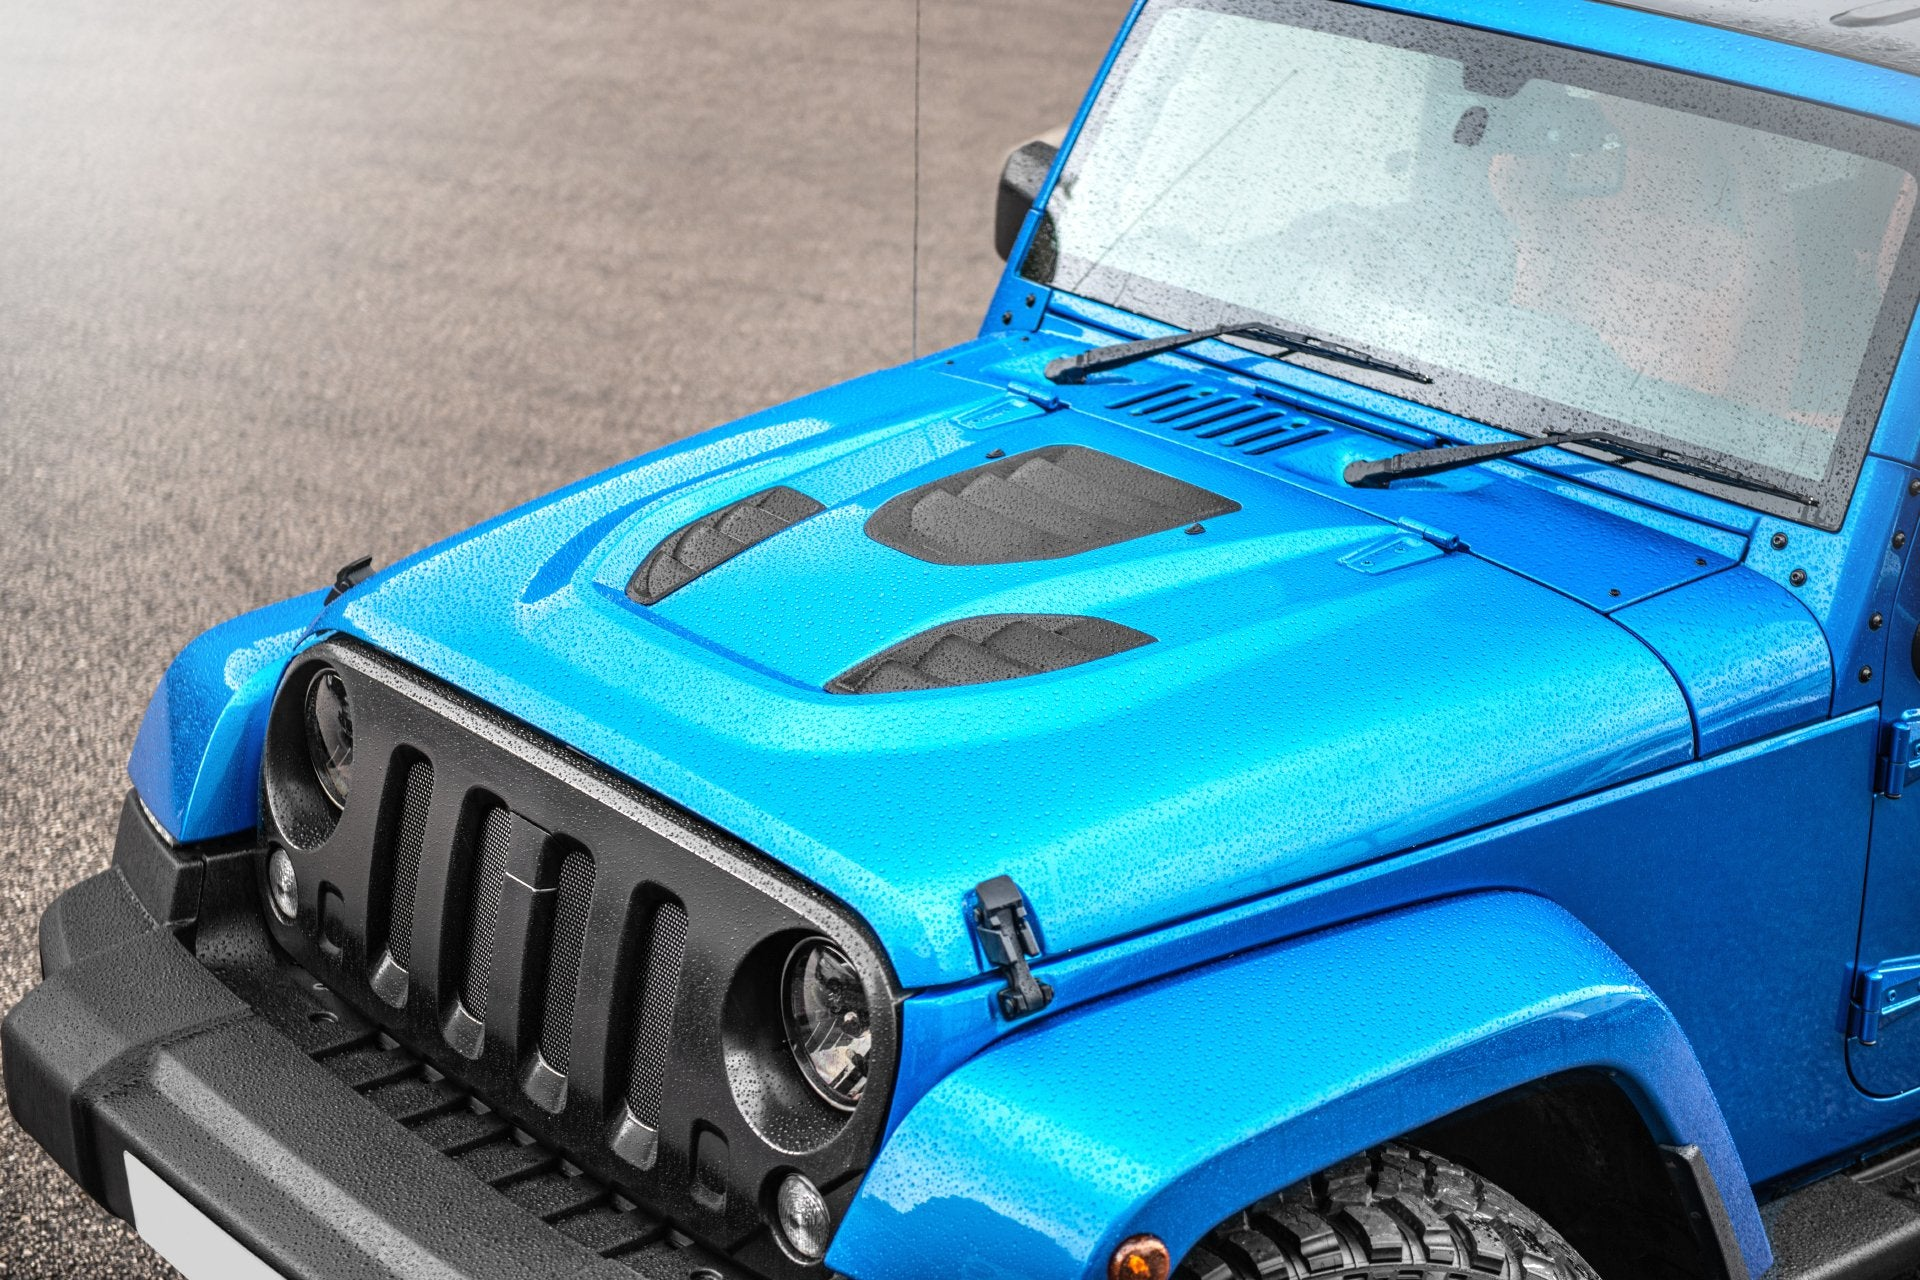 JEEP WRANGLER jk (2007-2018) Expedition Iron Man Vented Bonnet - Project Kahn